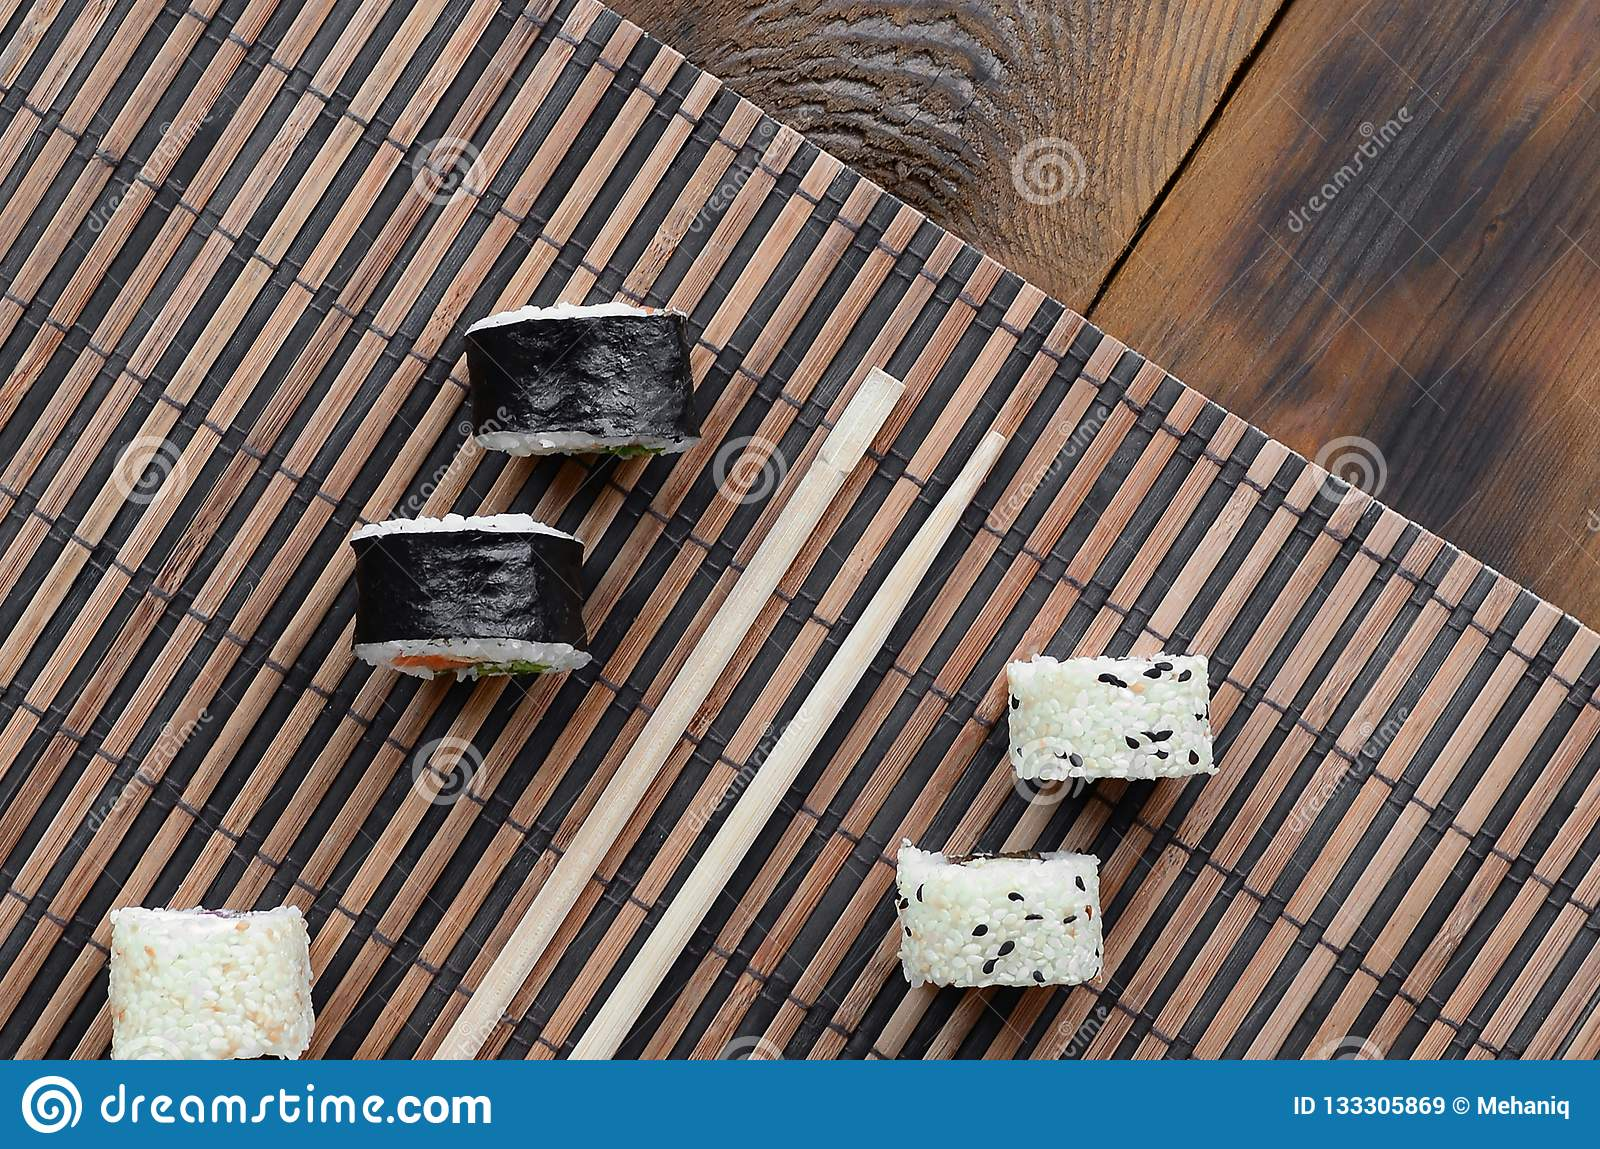 Sushi rolls and wooden chopsticks lie on a bamboo straw serwing mat. Traditional Asian food. Top view